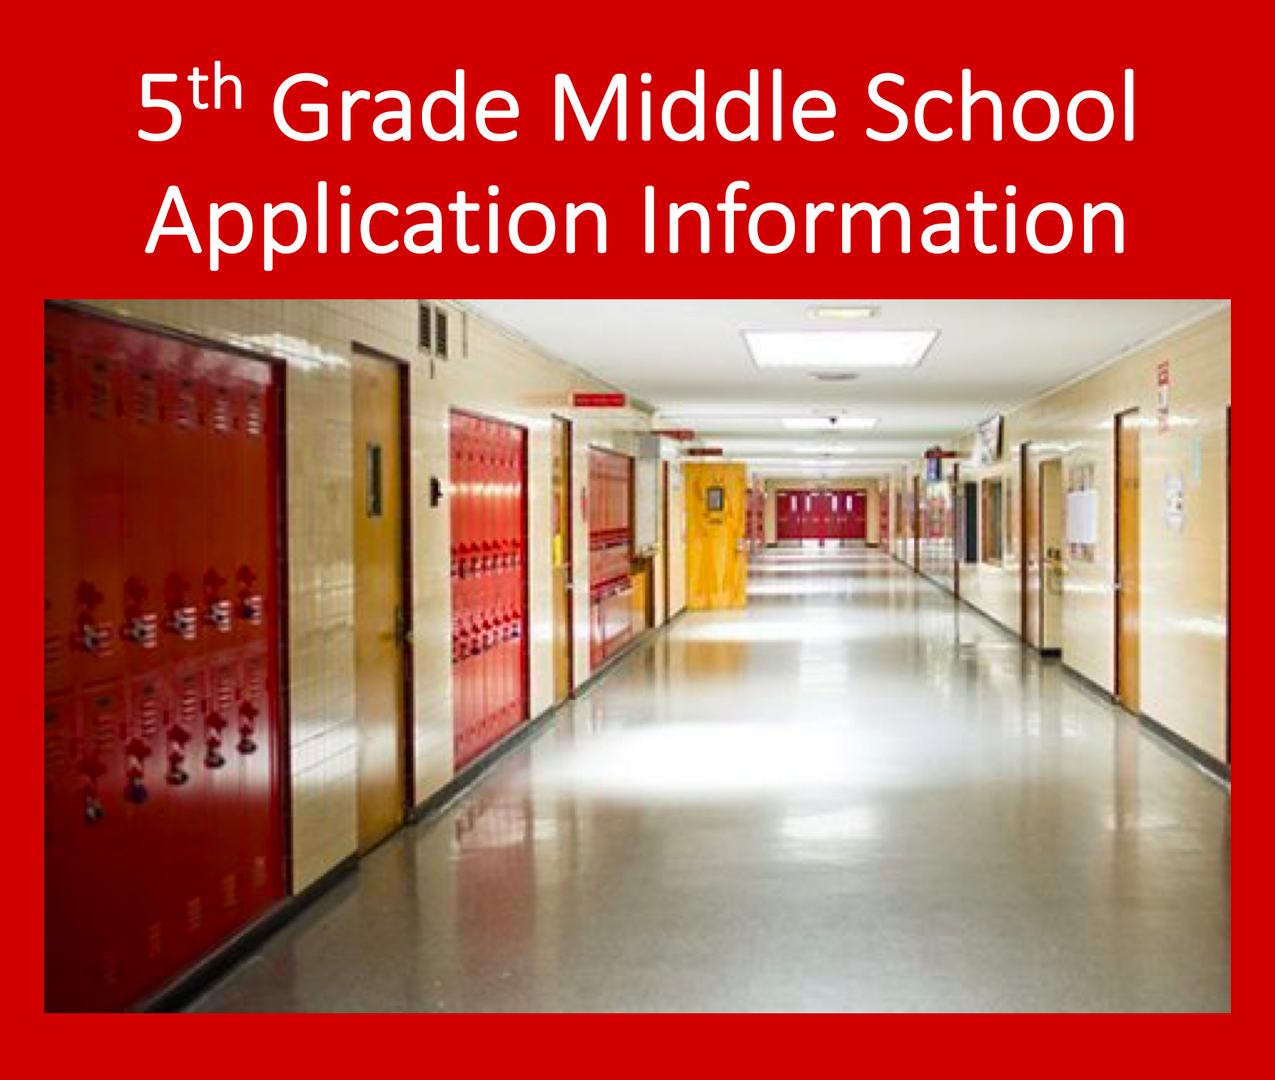 Link here to our middle school application information page on a different tab.